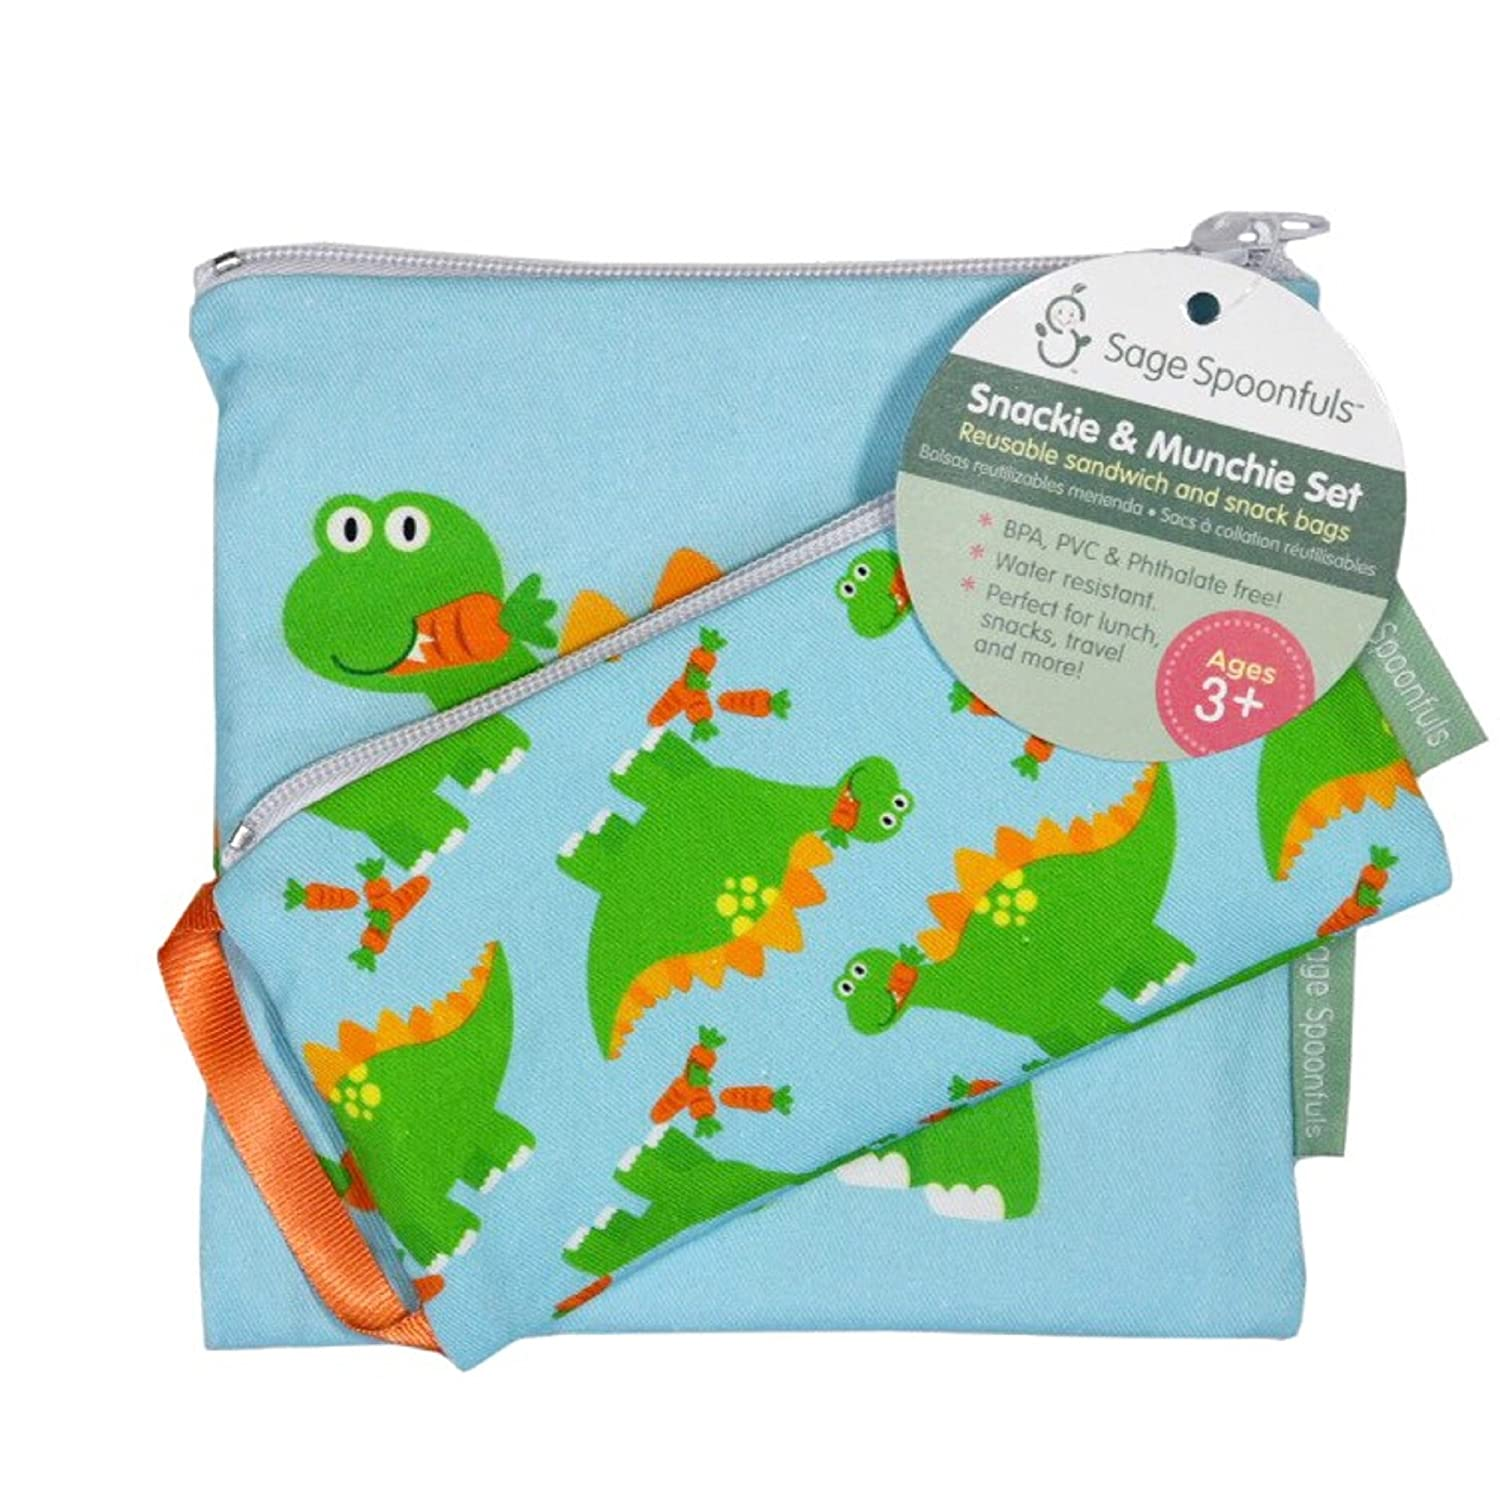 Sage Spoonfuls Reusable Sandwich and Snack Bag Snackie and Munchie Set, Dinosaur